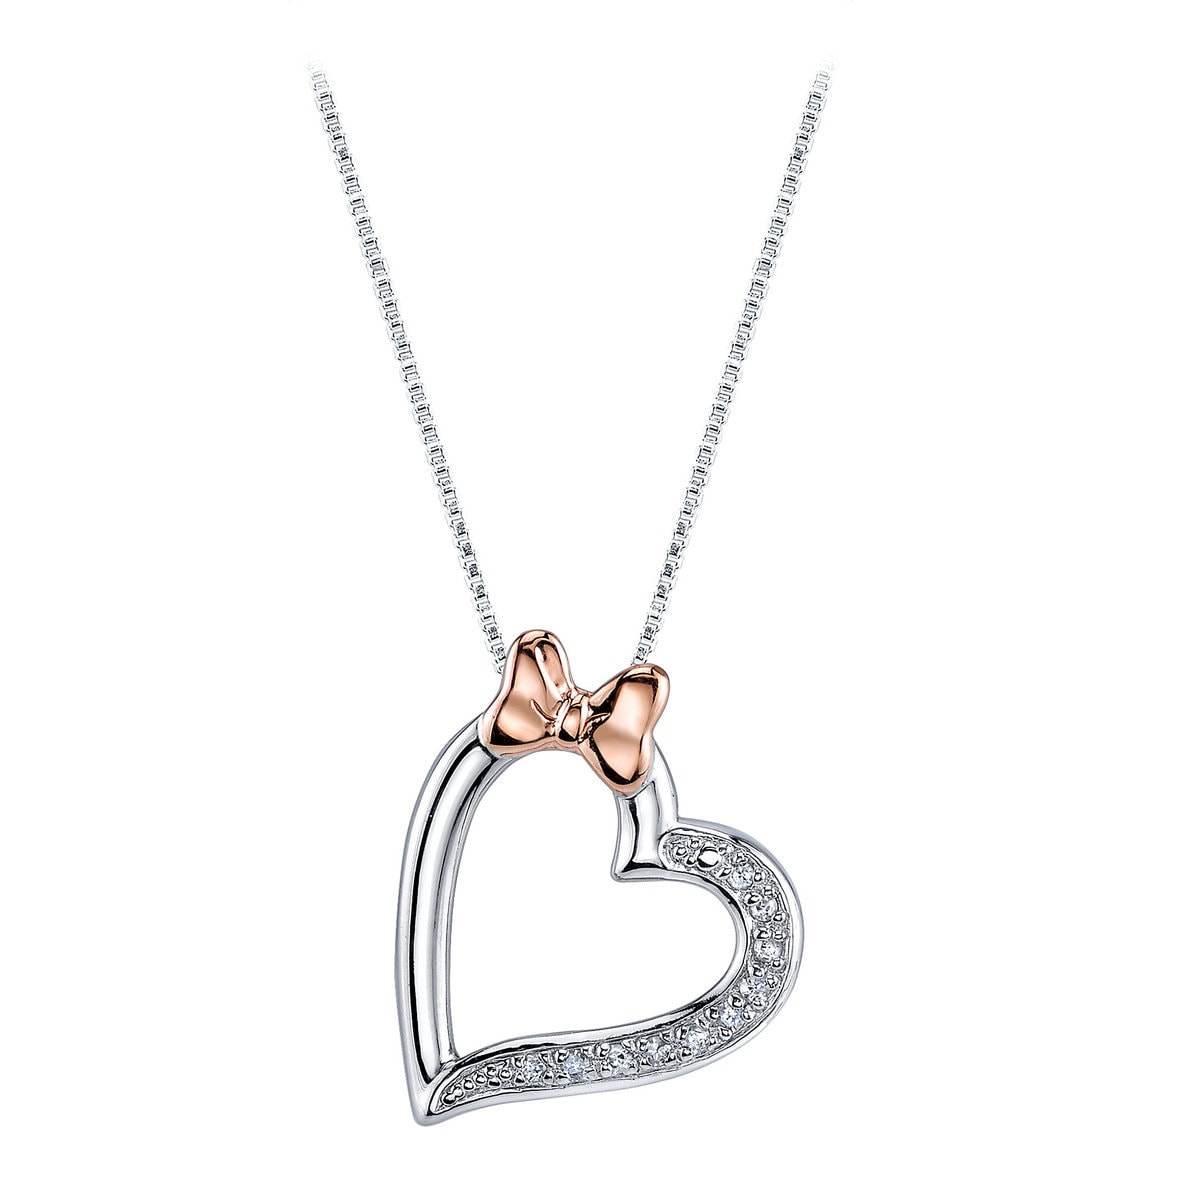 jewellery pav adina products necklace folded reyter heart pave